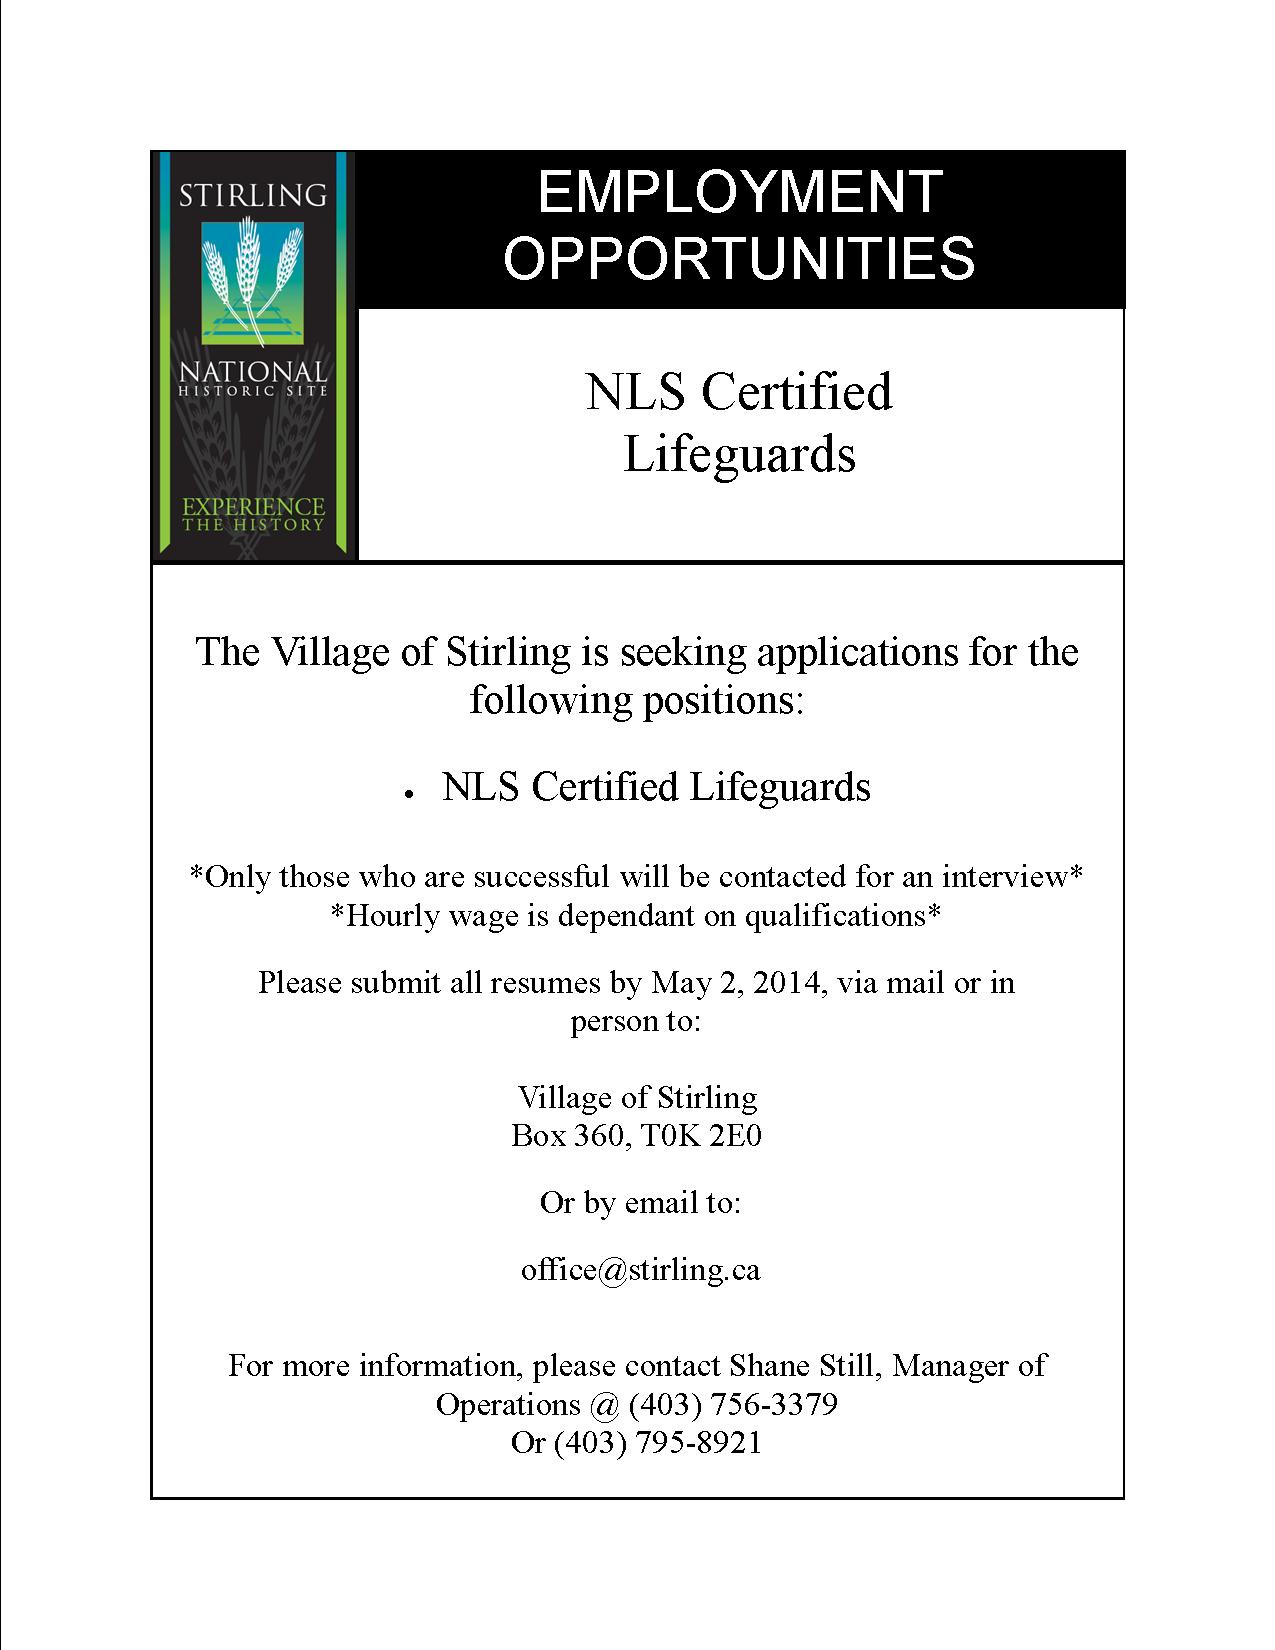 summer job posting village of stirling employment opportunities 2014 lifeguards